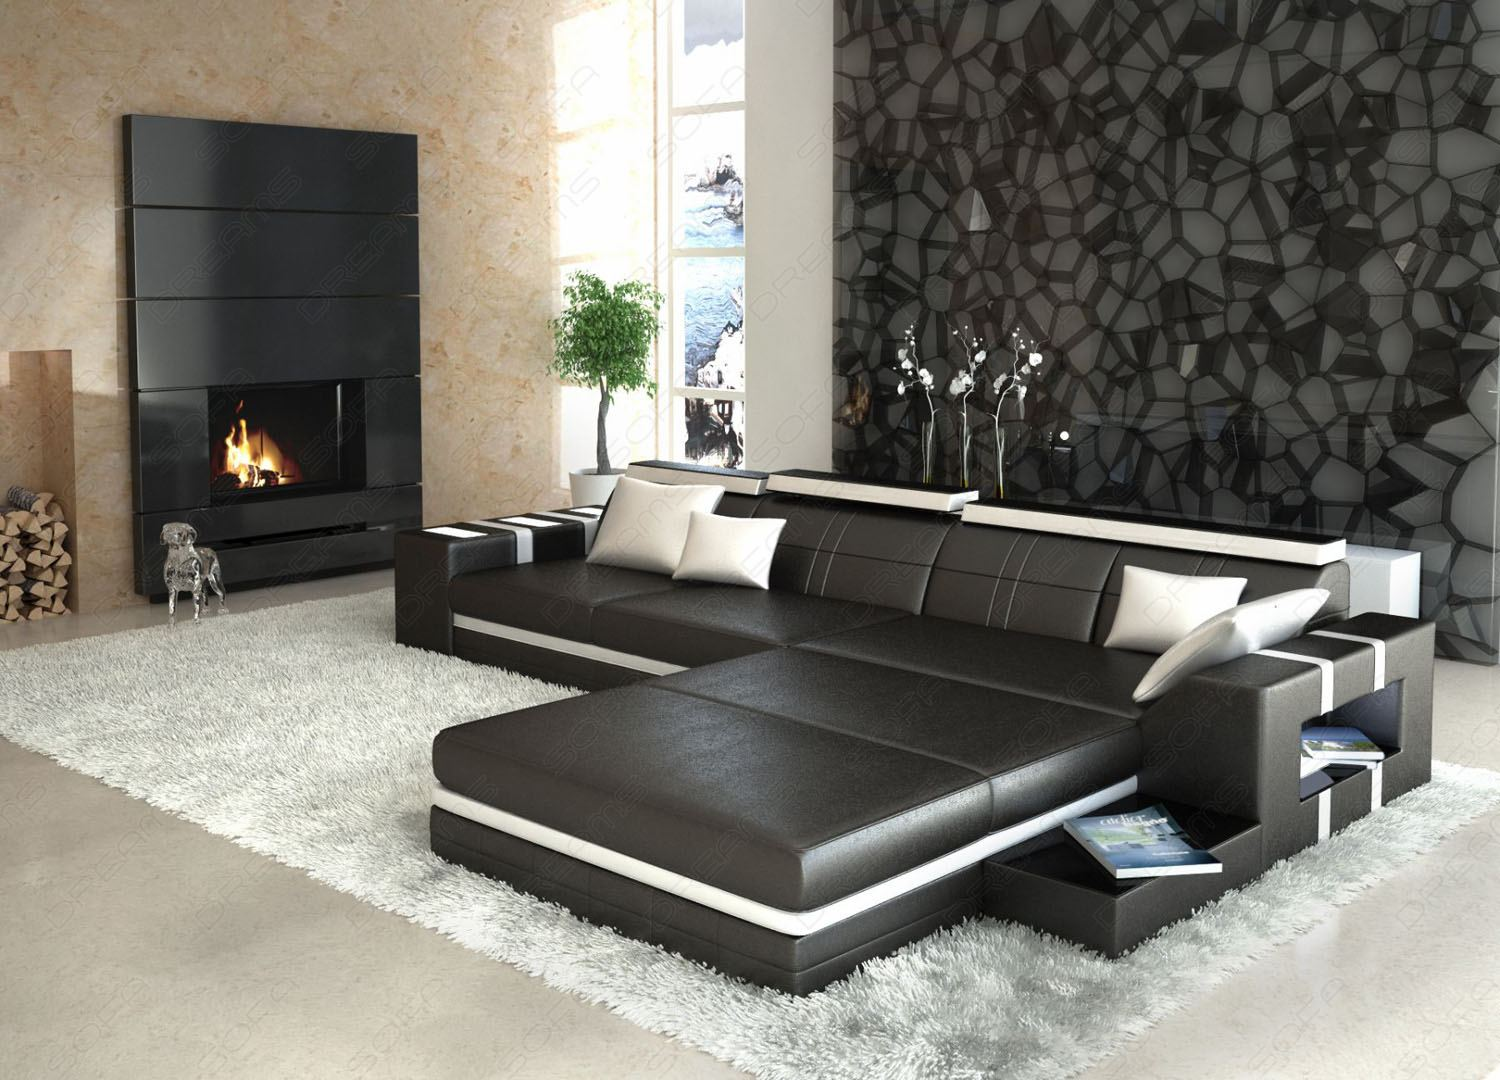 ledersofa asti l form schwarz weiss mit beleuchtung. Black Bedroom Furniture Sets. Home Design Ideas